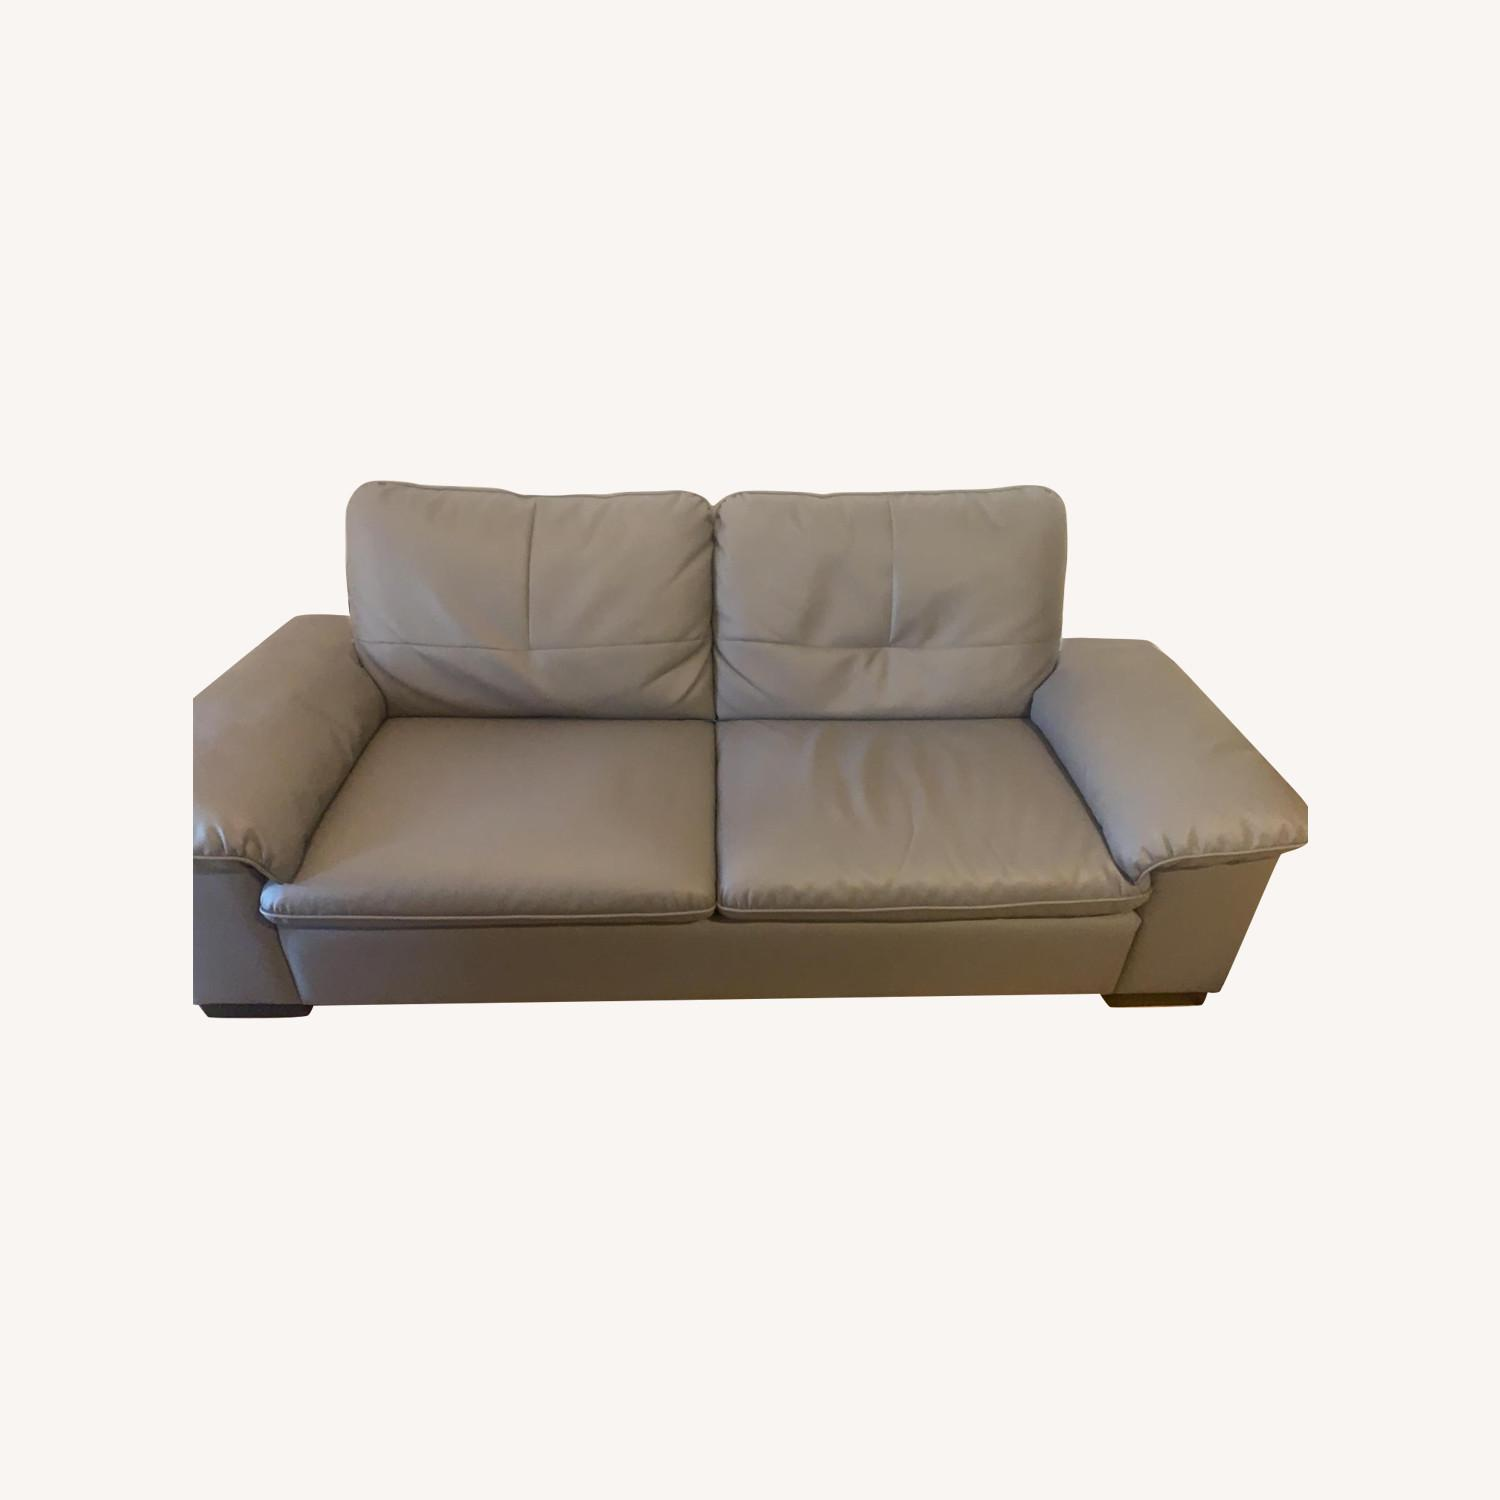 Faux Leather Grey Couch - image-0